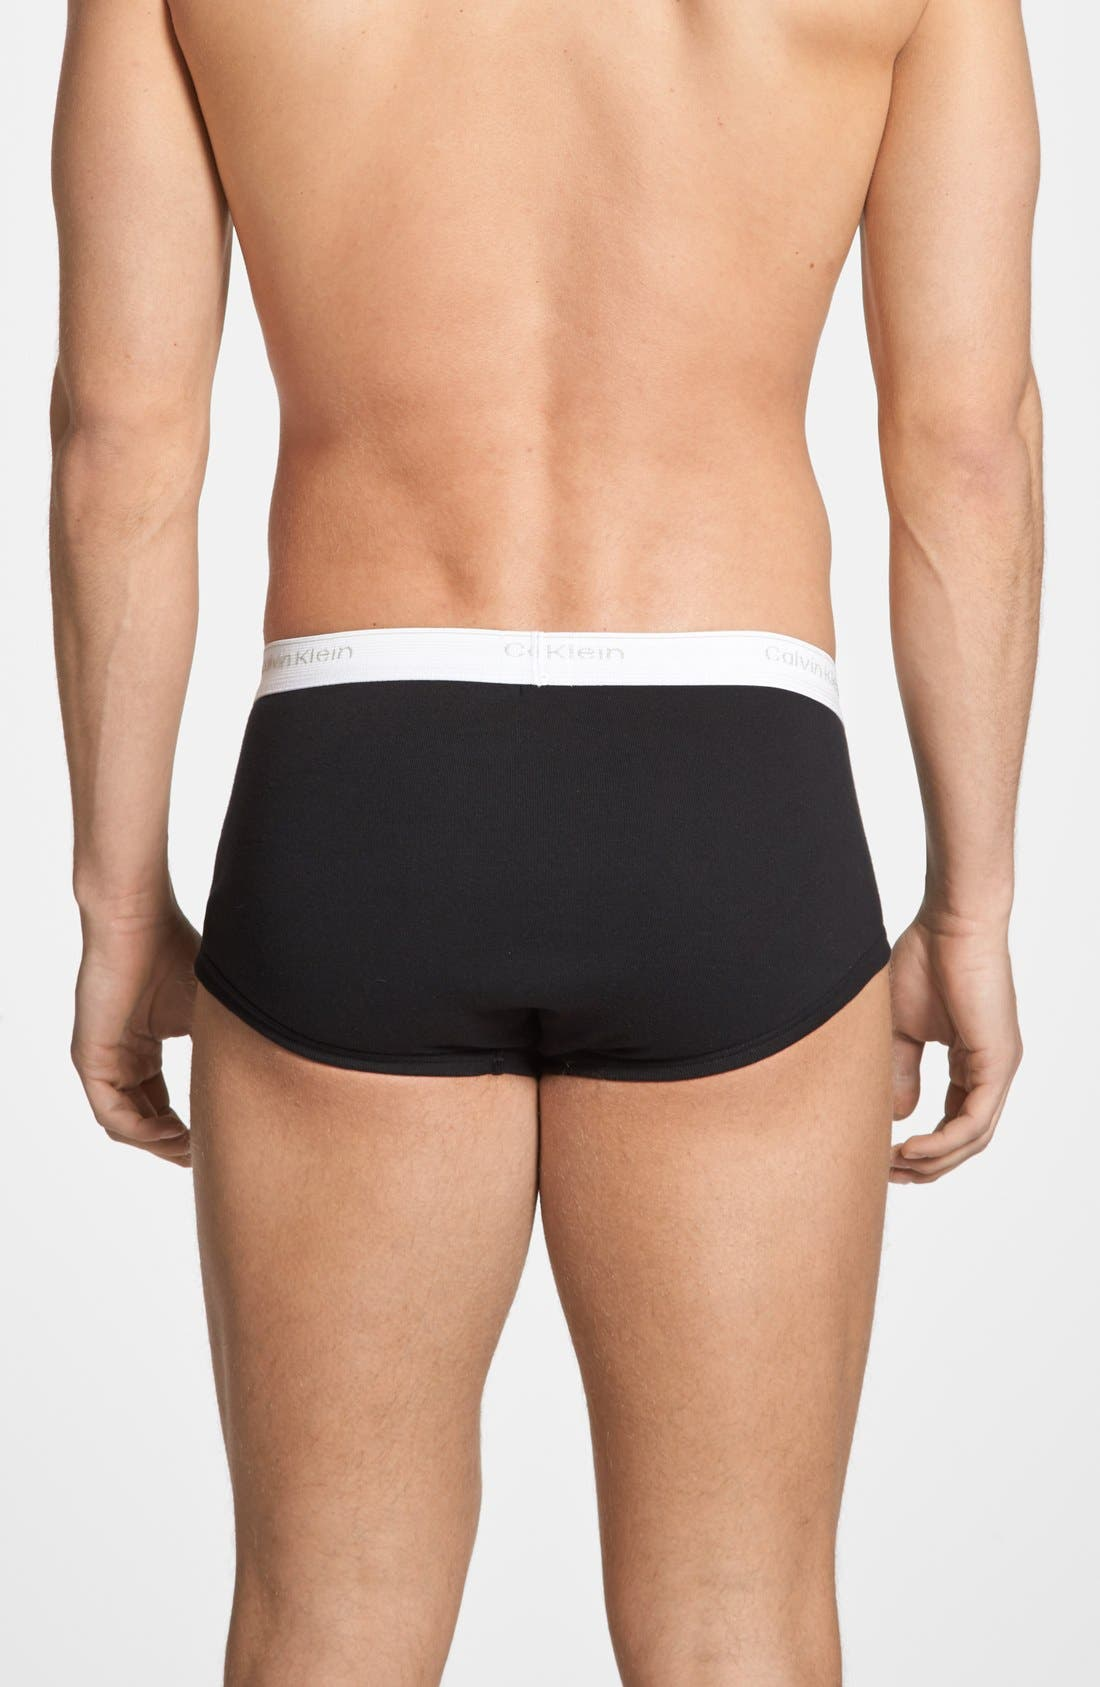 Alternate Image 2  - Calvin Klein 'U1000' Cotton Briefs (Assorted 3-Pack)